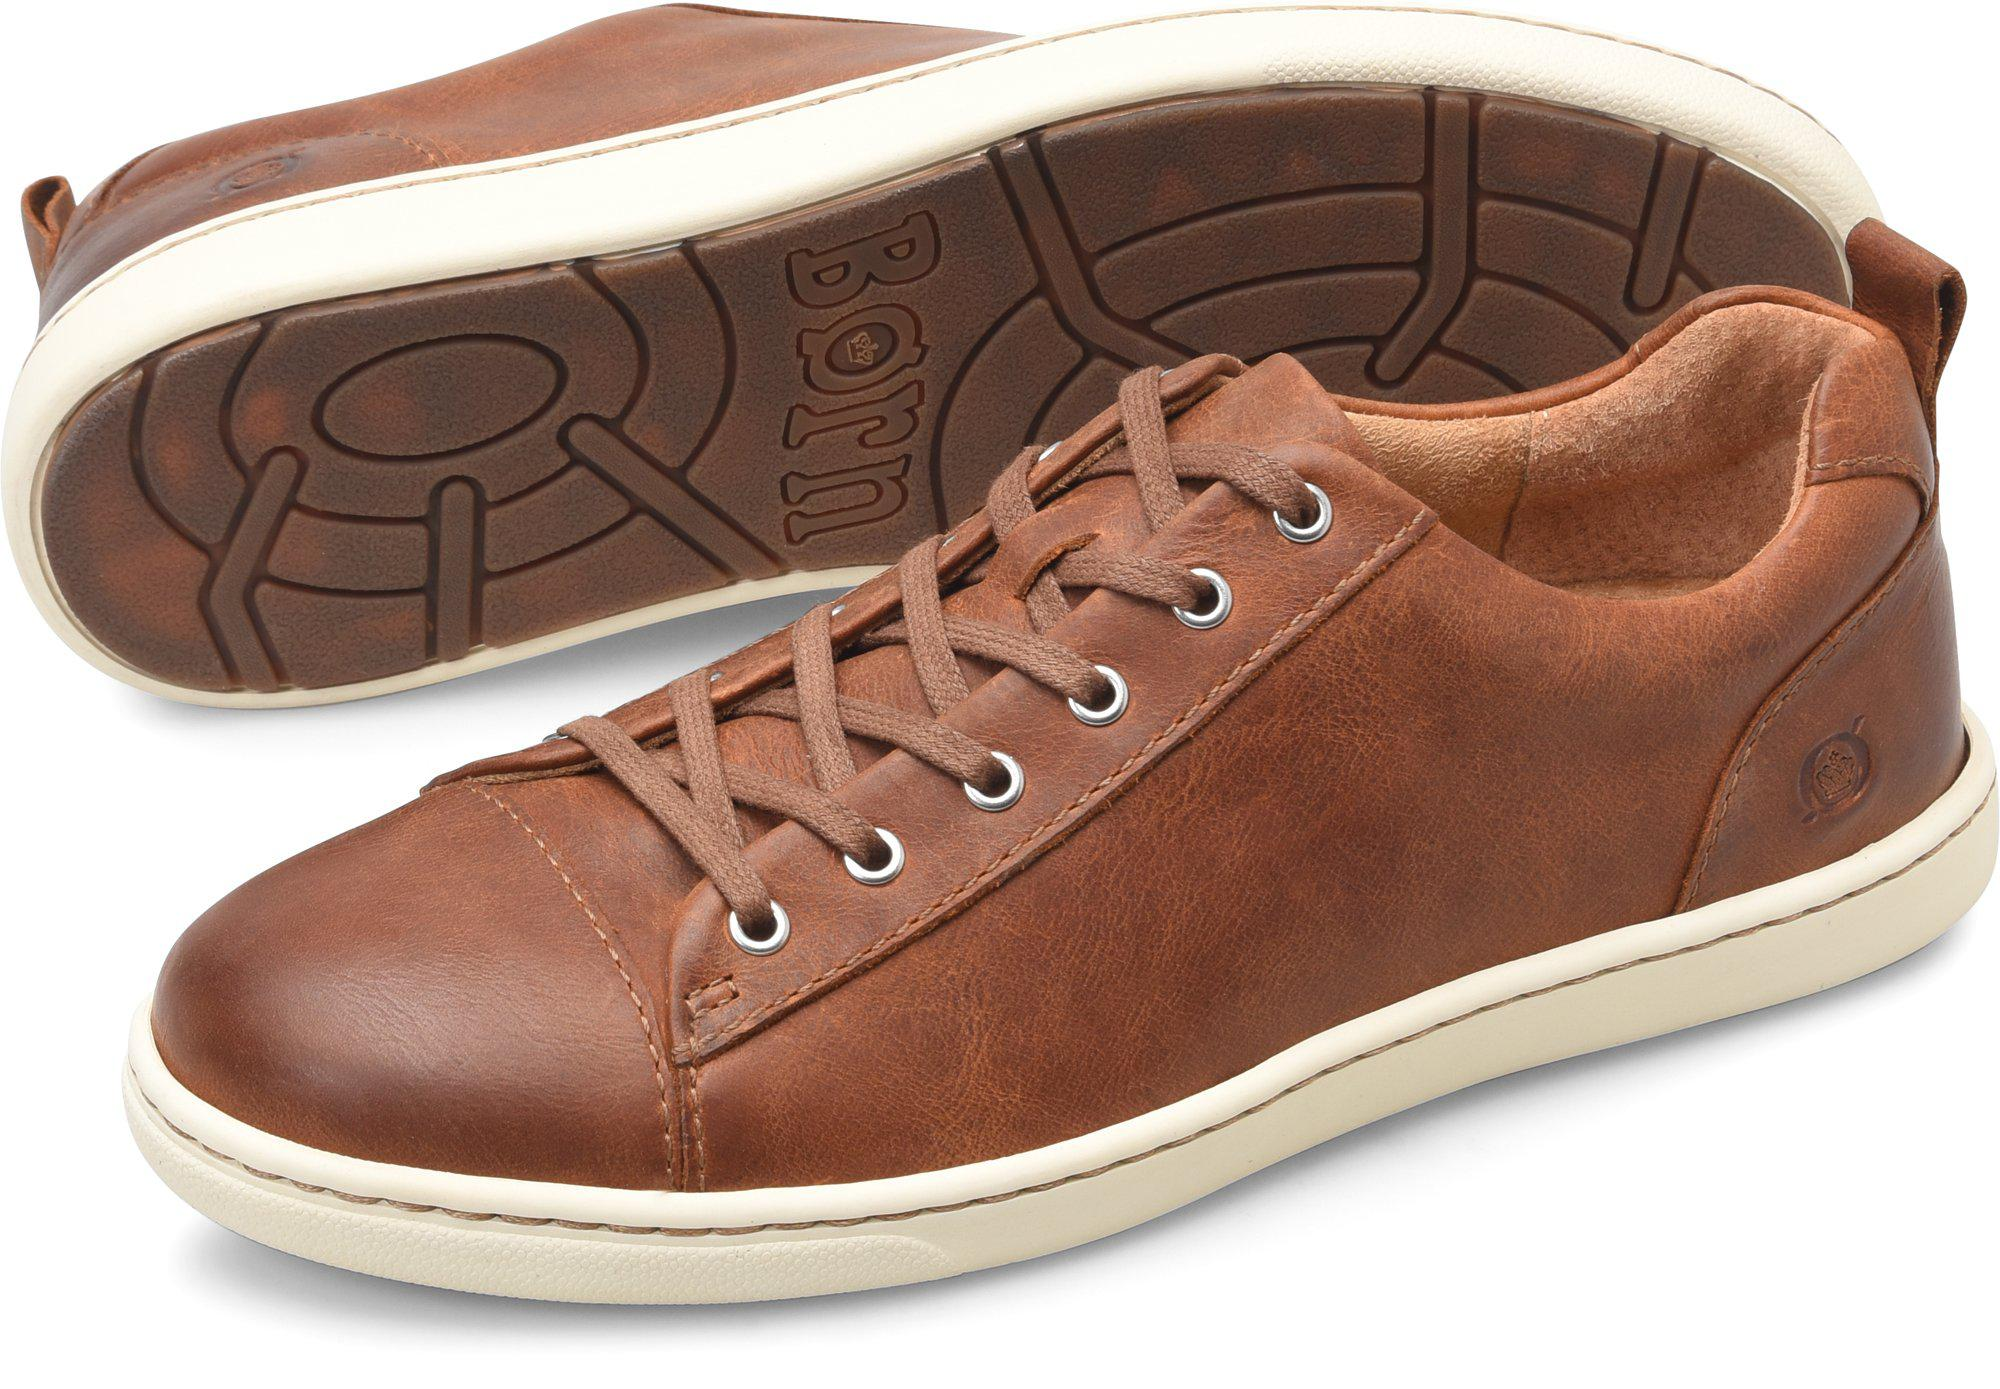 79a9ad659b2605 Born Shoes - Brown Allegheny for Men - Lyst. View fullscreen